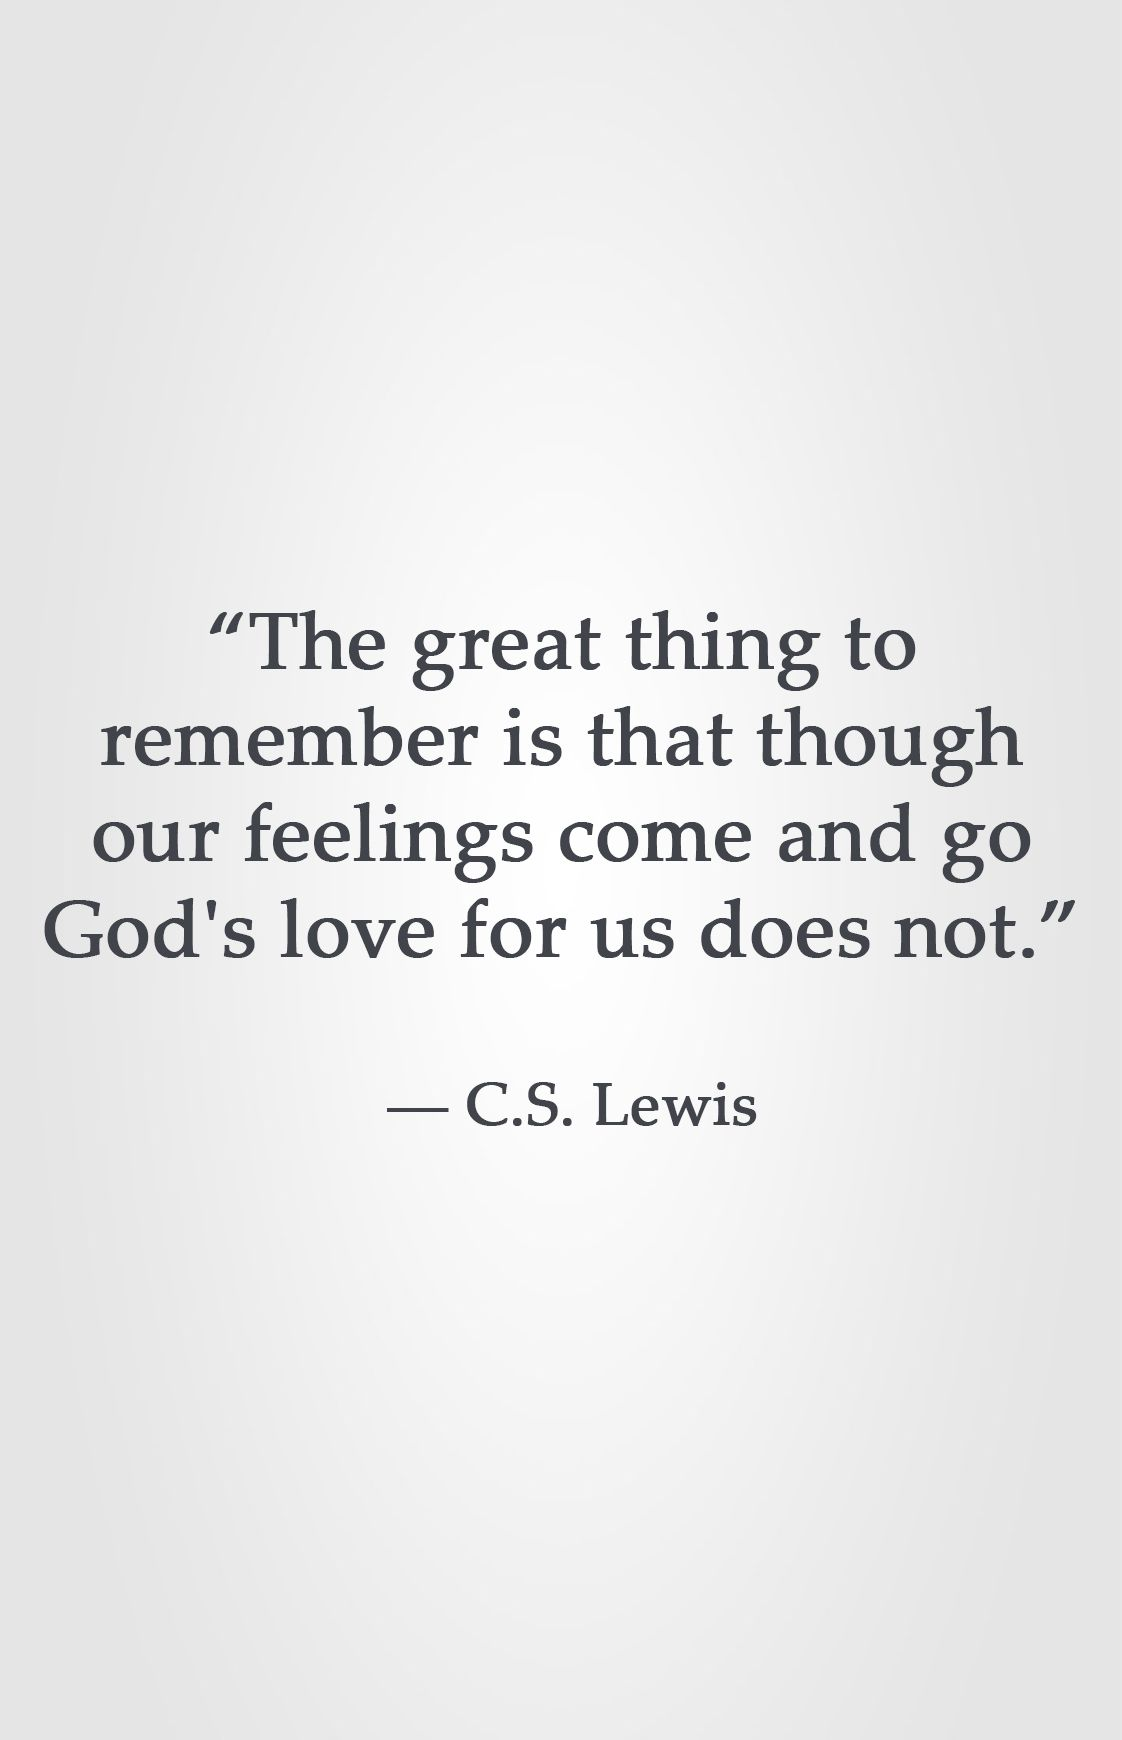 God's Love Quotes Enchanting The Great Thing To Remember Is That Though Our Feelings Come And Go